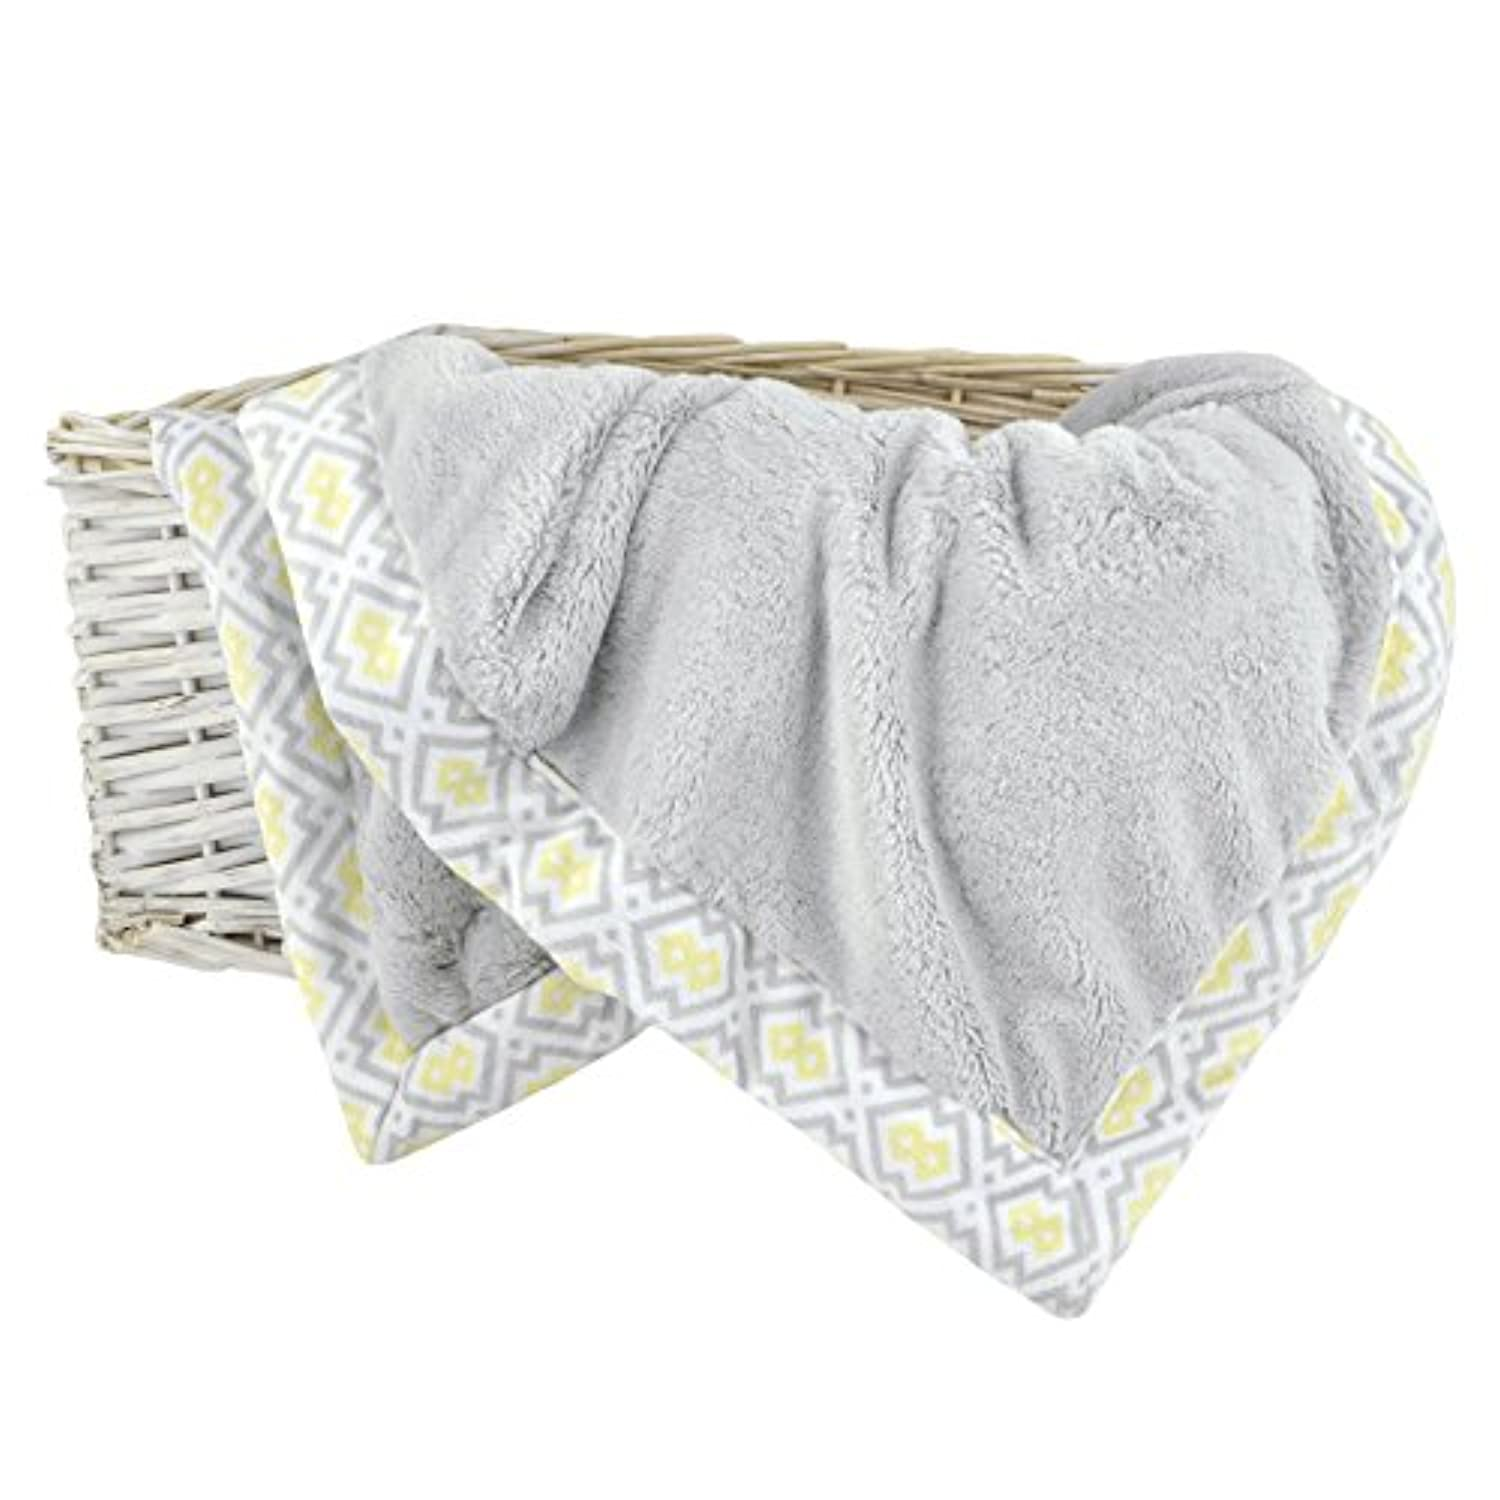 Just Born Plush Blanket, Grey/White/Yellow by Just Born